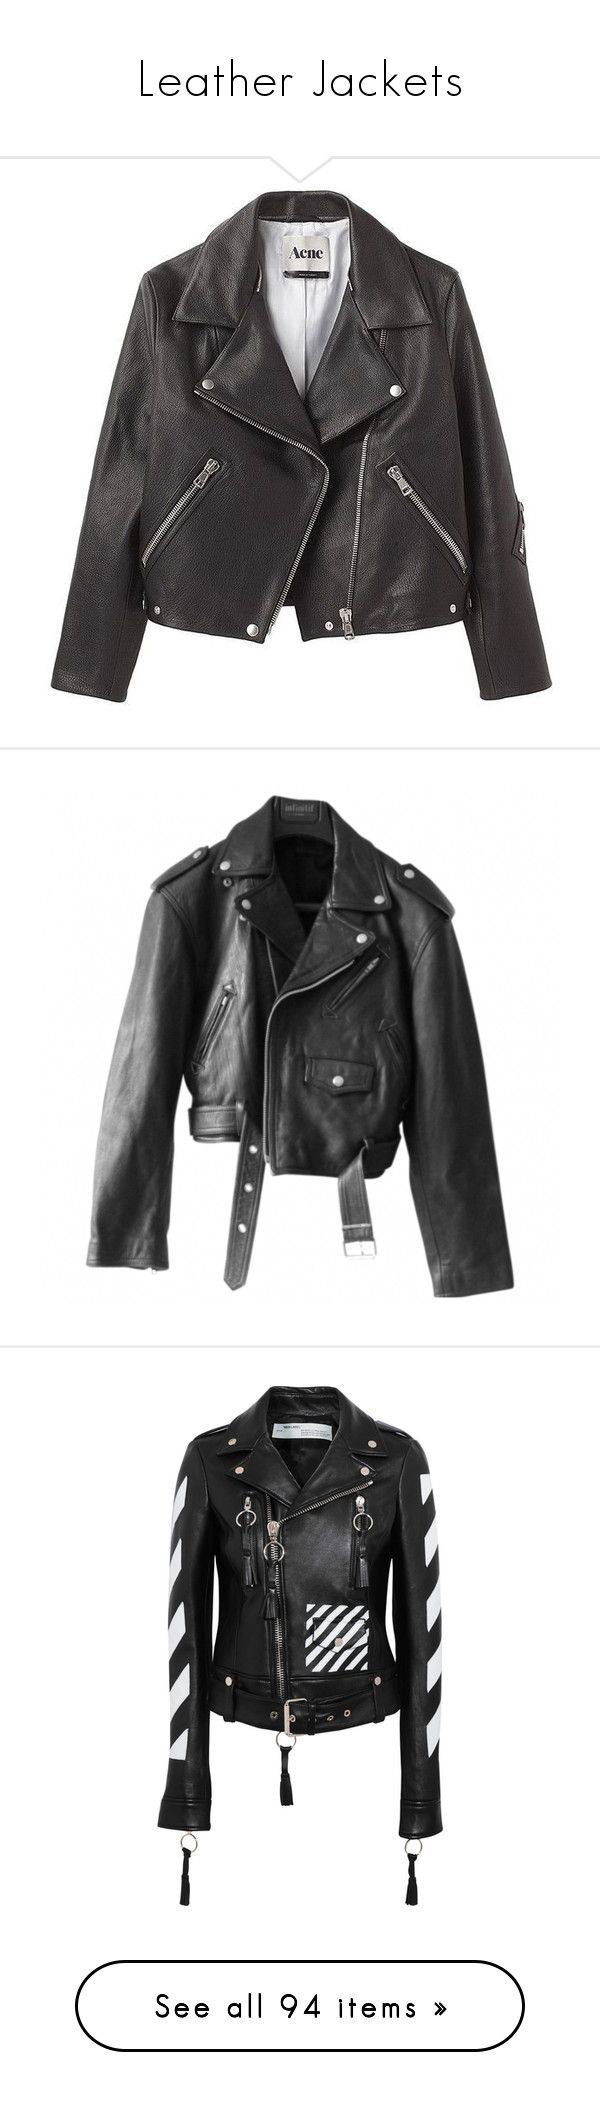 """Leather Jackets"" by vanilla-cupcakee ❤ liked on Polyvore featuring outerwear, jackets, coats, coats & jackets, 100 leather jacket, real leather jackets, genuine leather jackets, leather jackets, leather jacket and leather moto jackets"